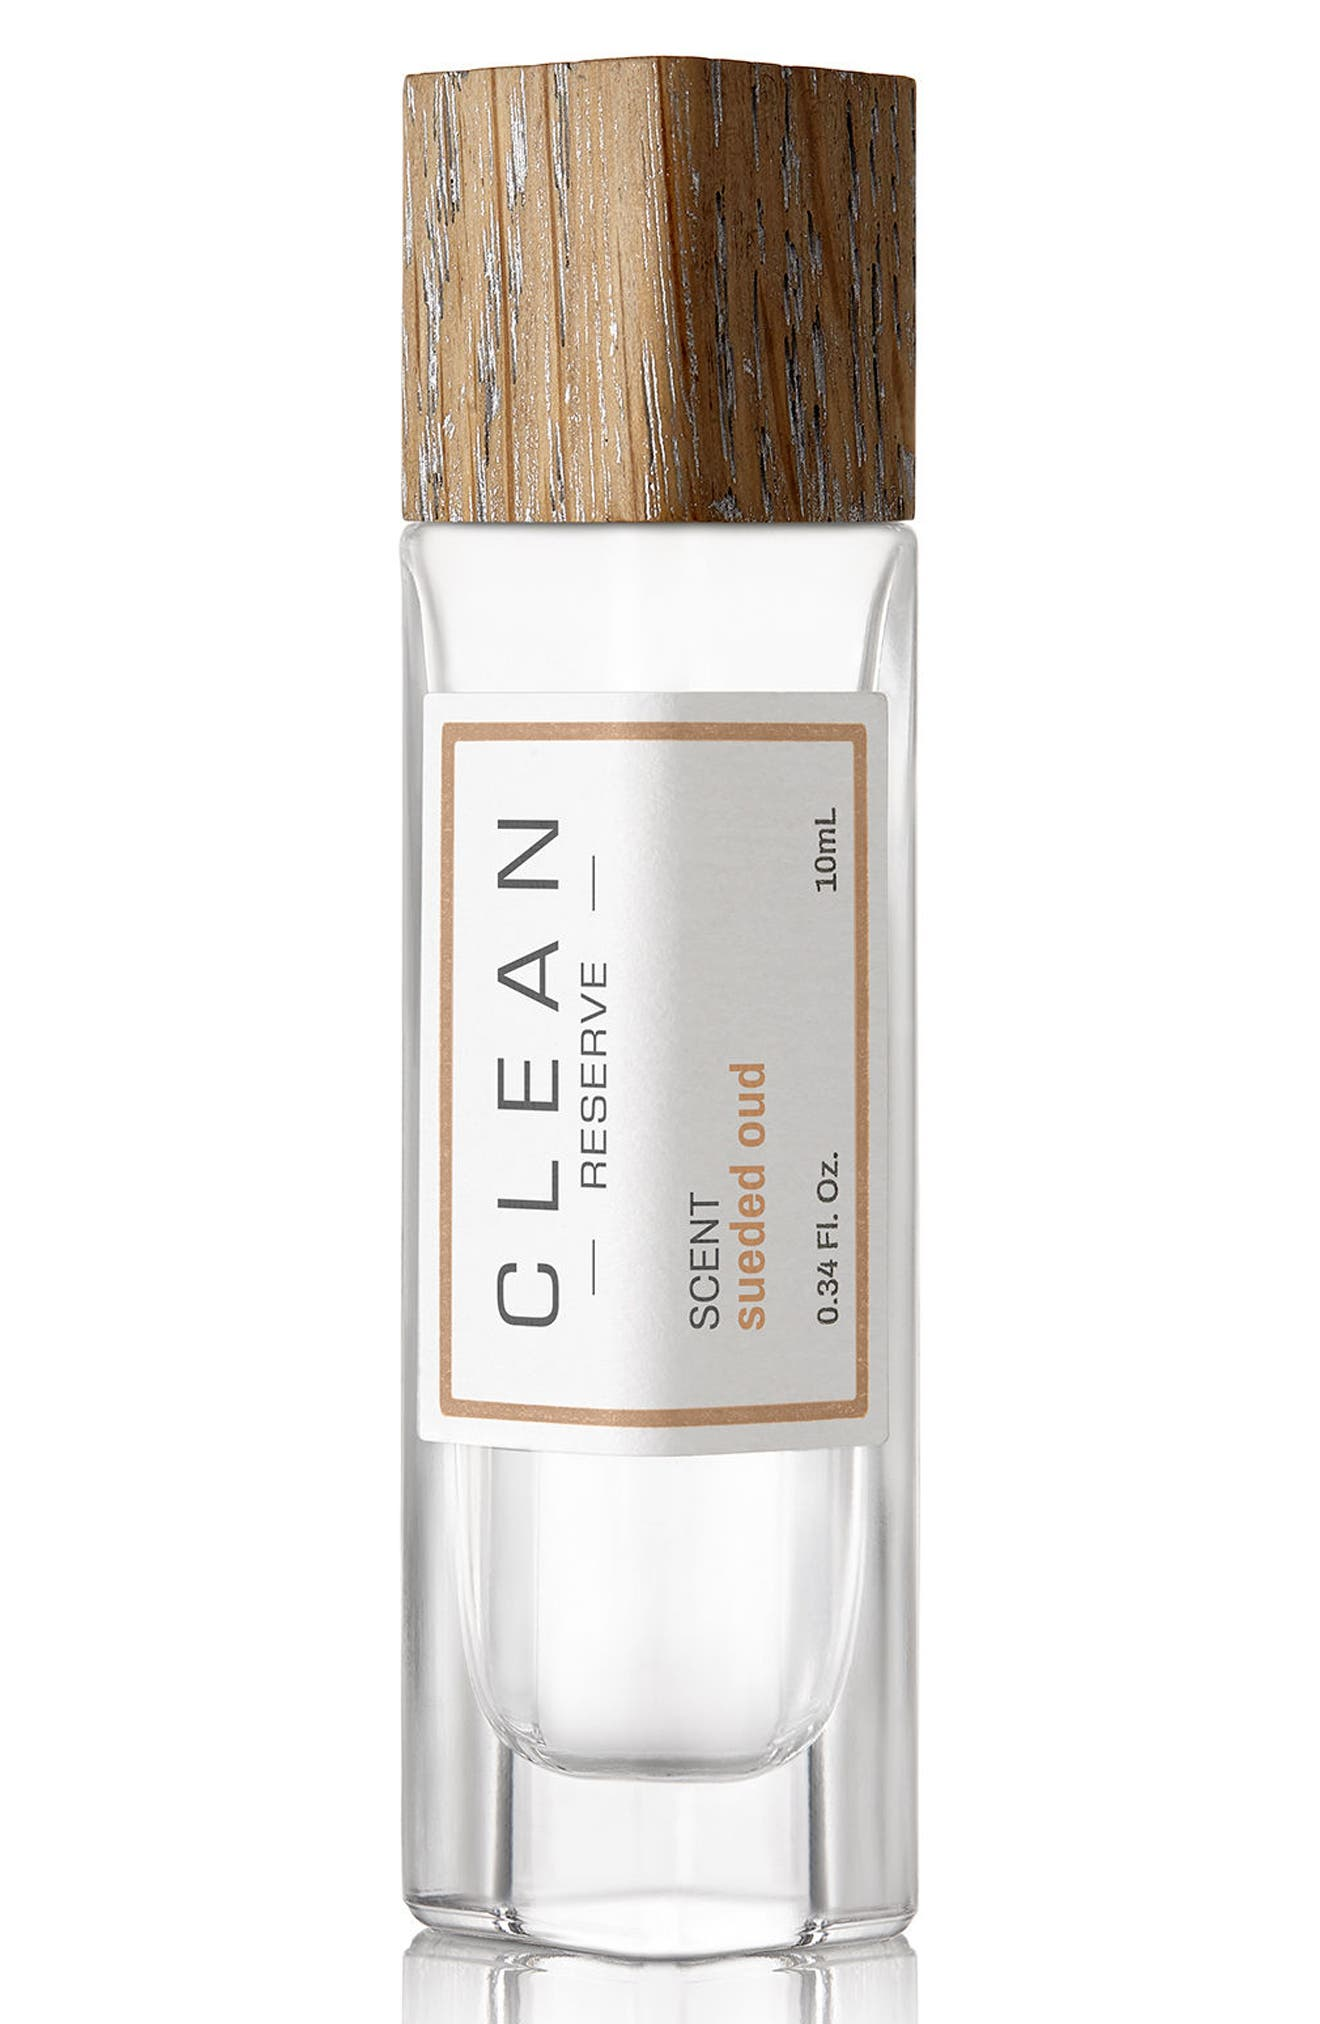 Main Image - Clean Reserve Sueded Oud Eau de Parfum Pen Spray